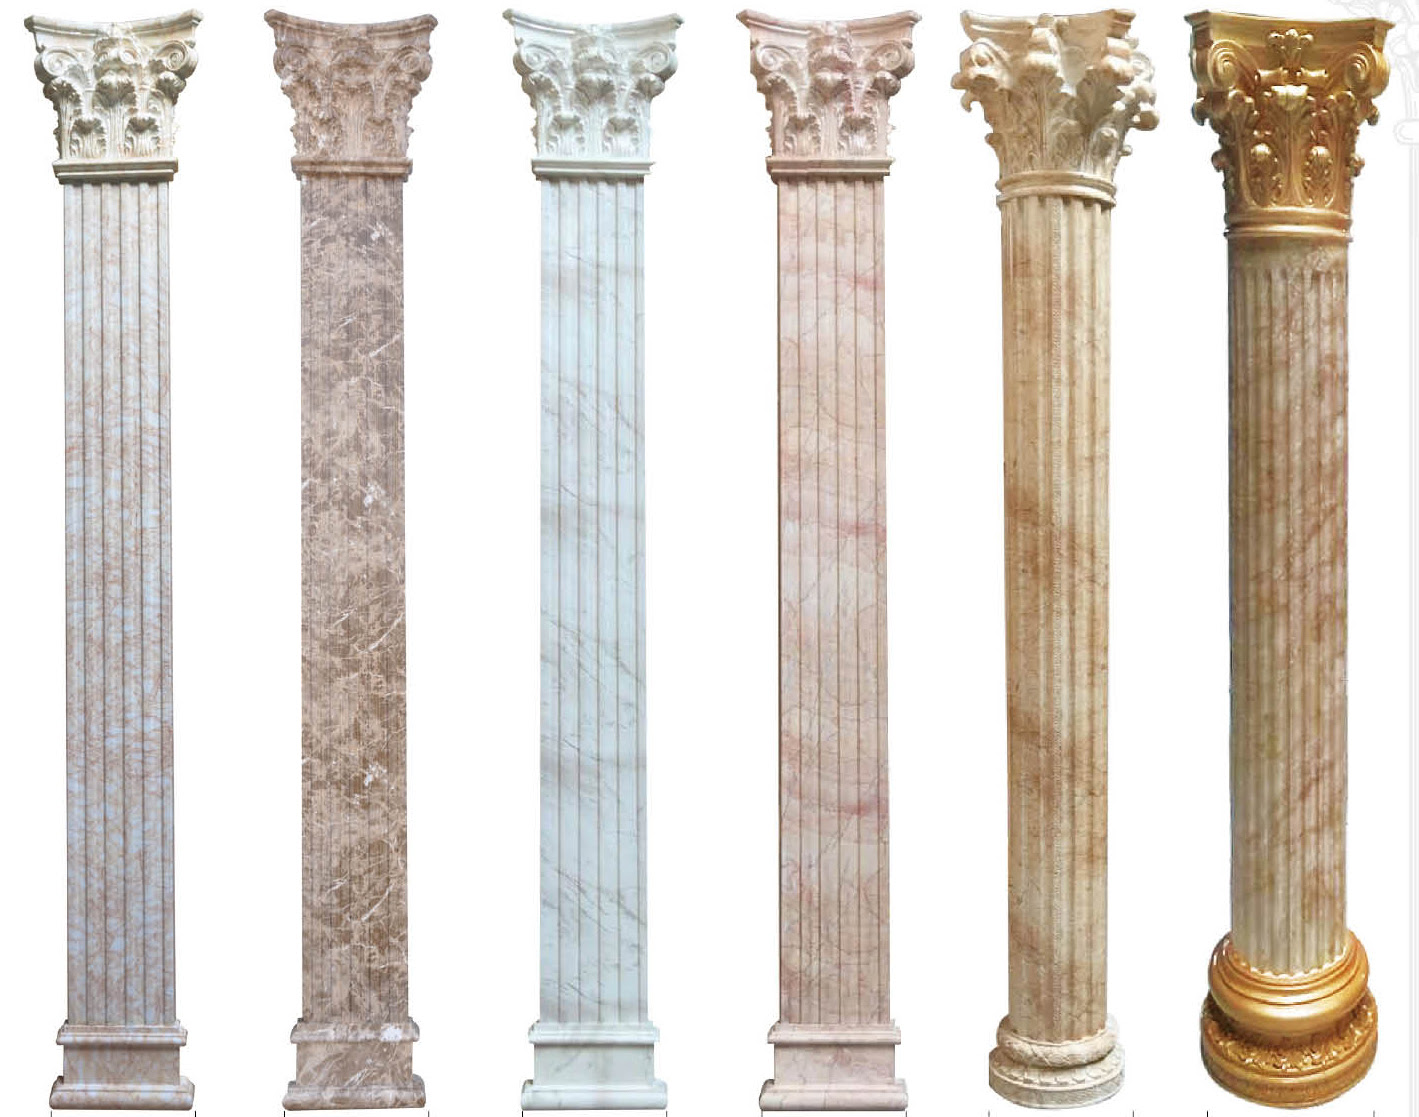 Hotsell Pvc My Order Plaster Of Paris Pillars Design Image Buy